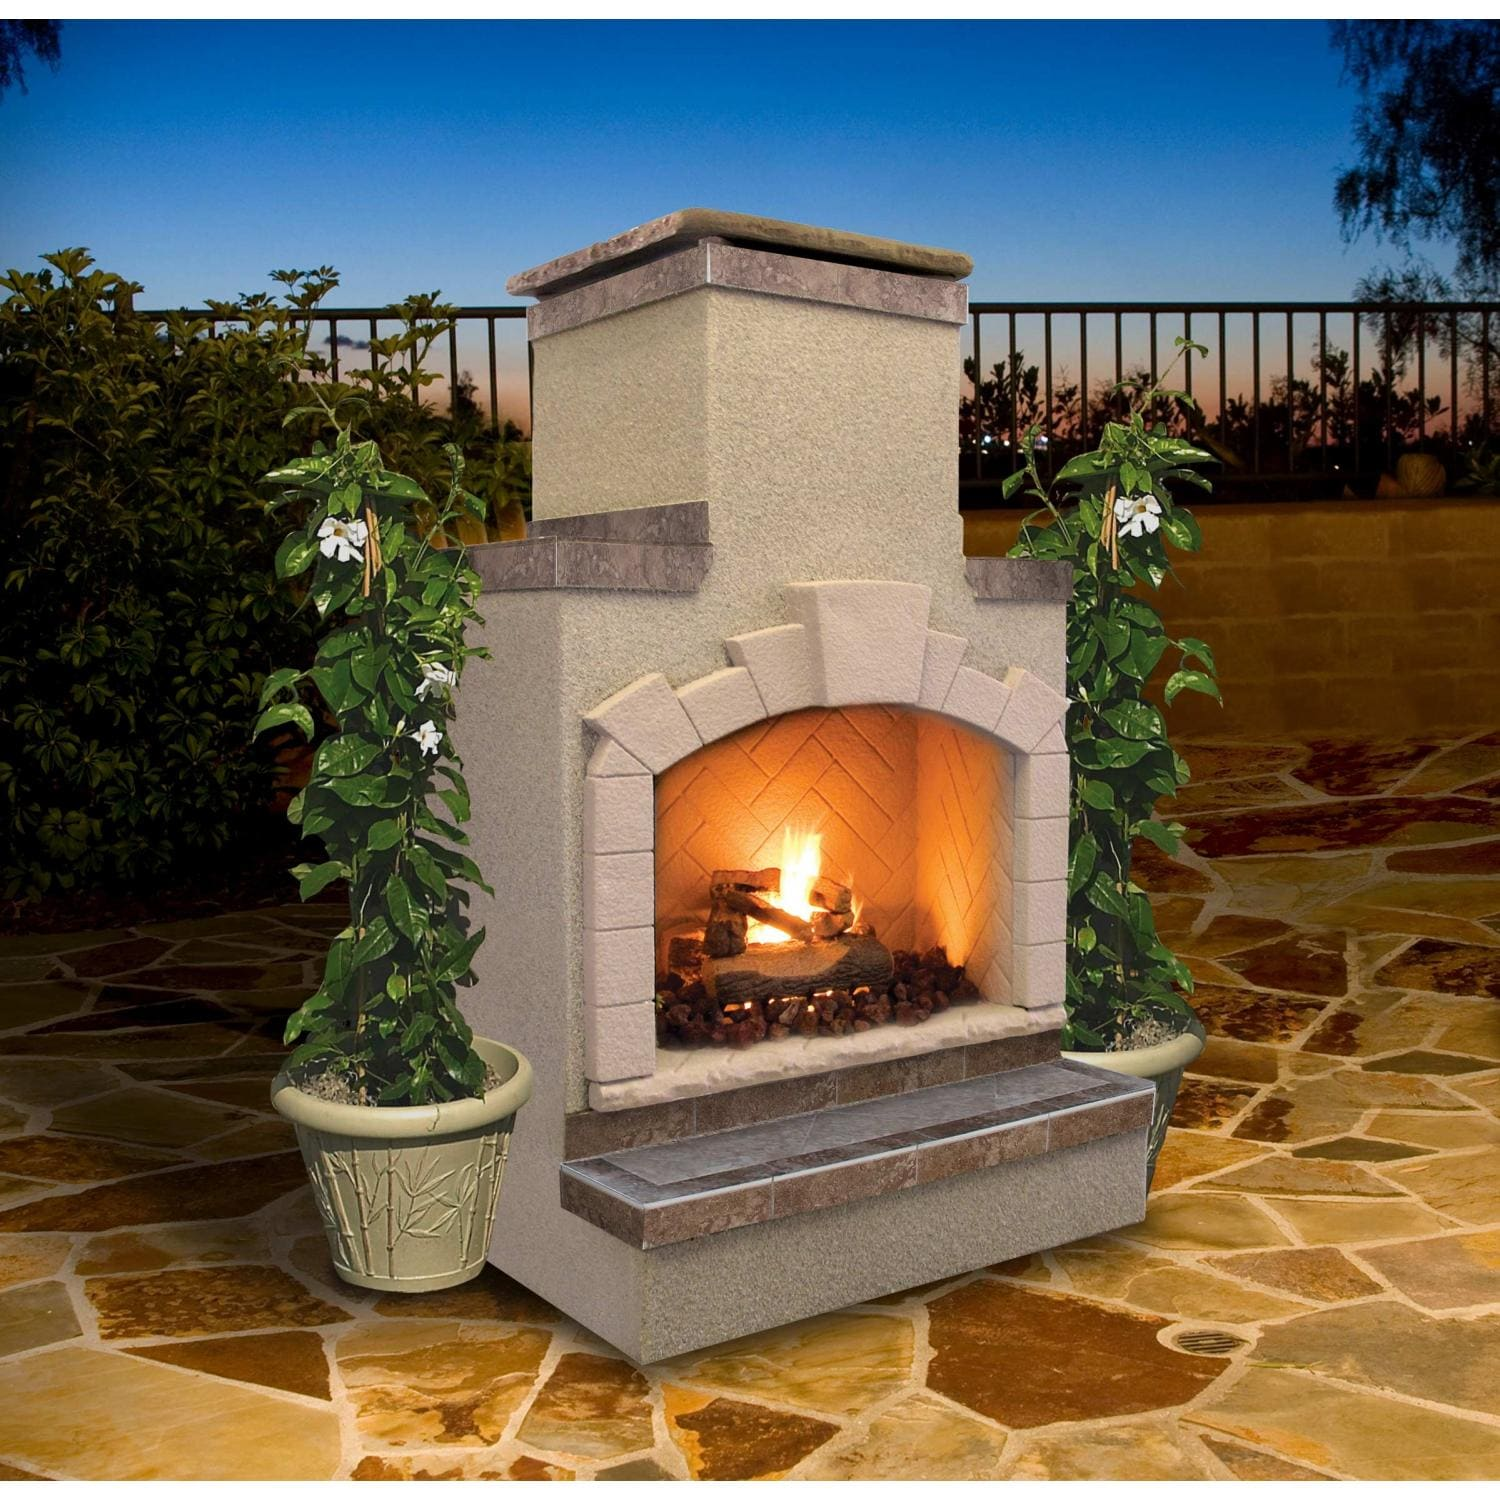 Diy Heatilator Gas Fireplace Conversion Fire Glass Rock With Cal Flame 48-inch Outdoor Propane Gas Fireplace With Stack